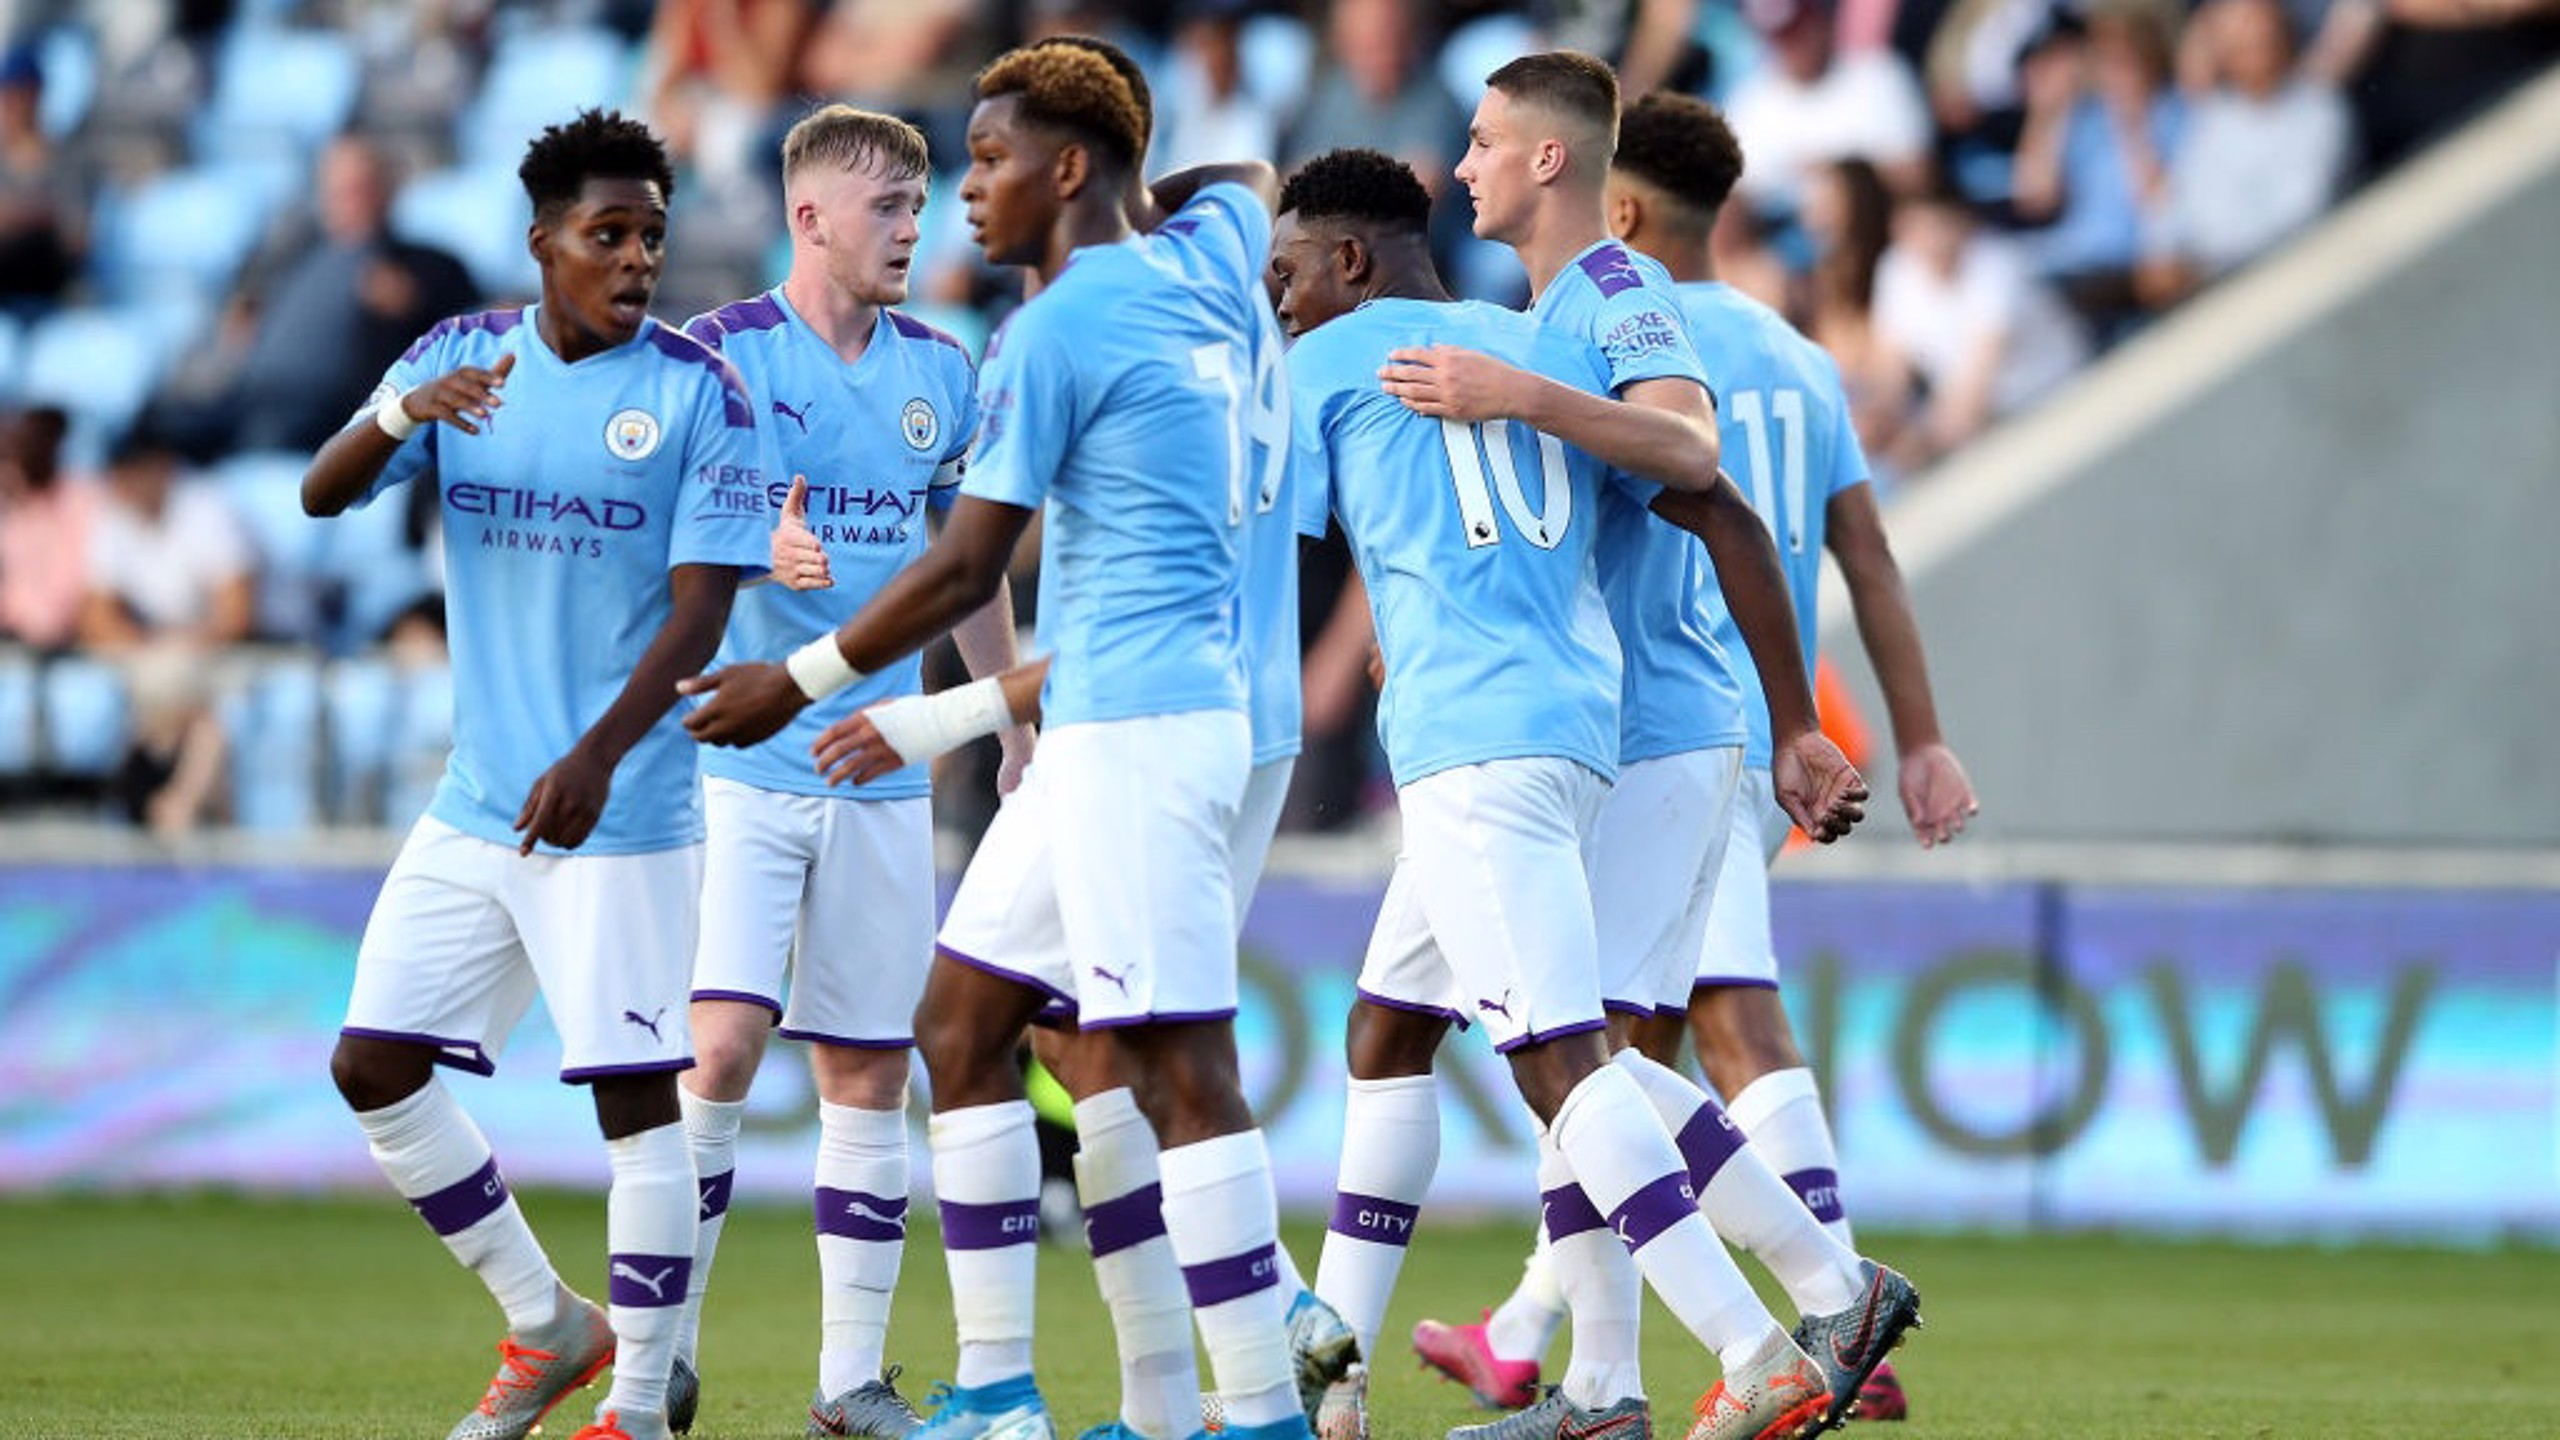 UP AND RUNNING: City EDS have their first win of the season